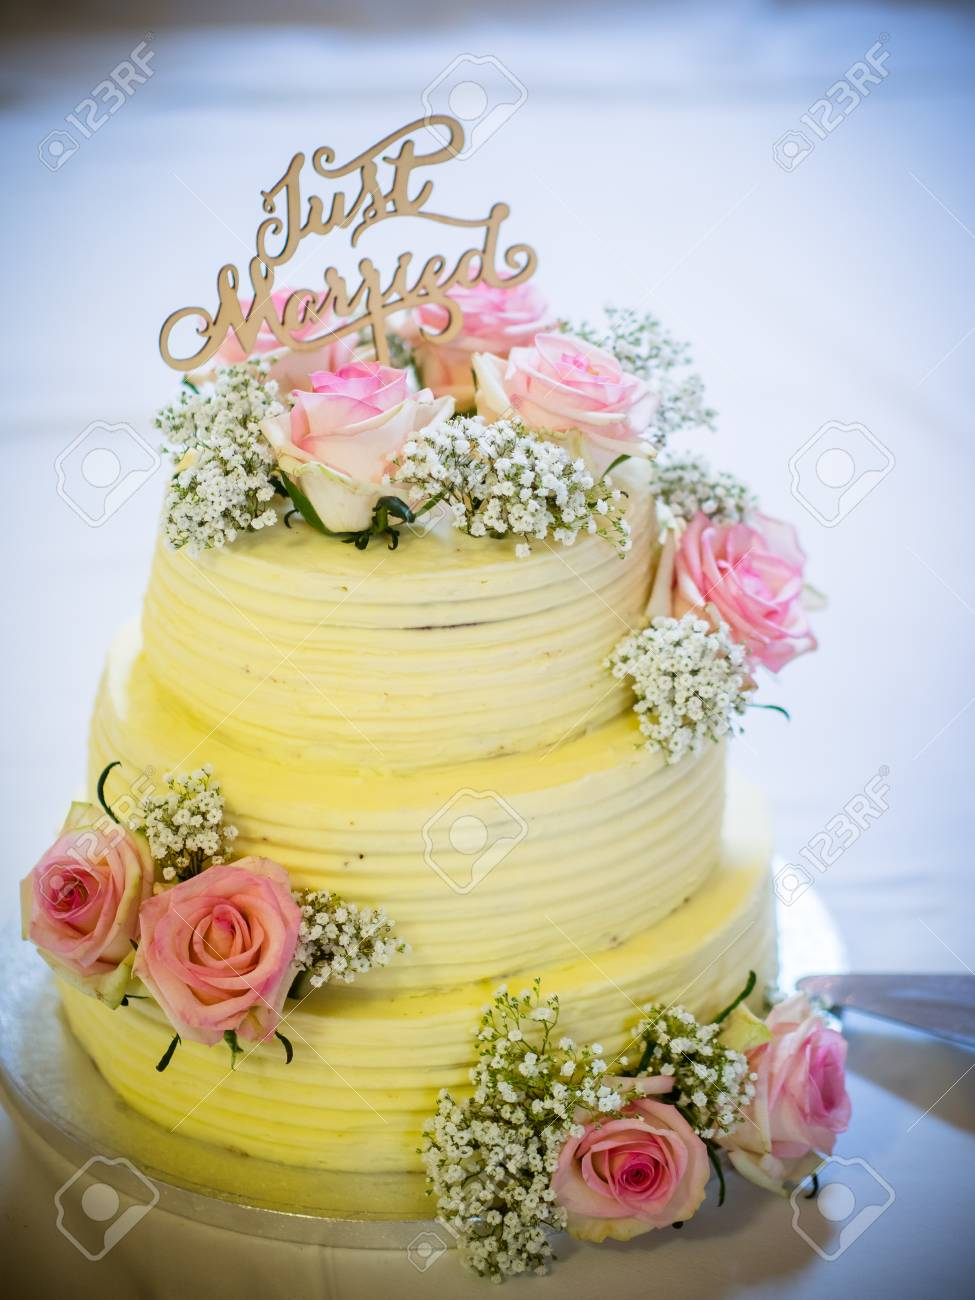 Wedding Cake With Pink Roses And Cream Stock Photo, Picture And ...